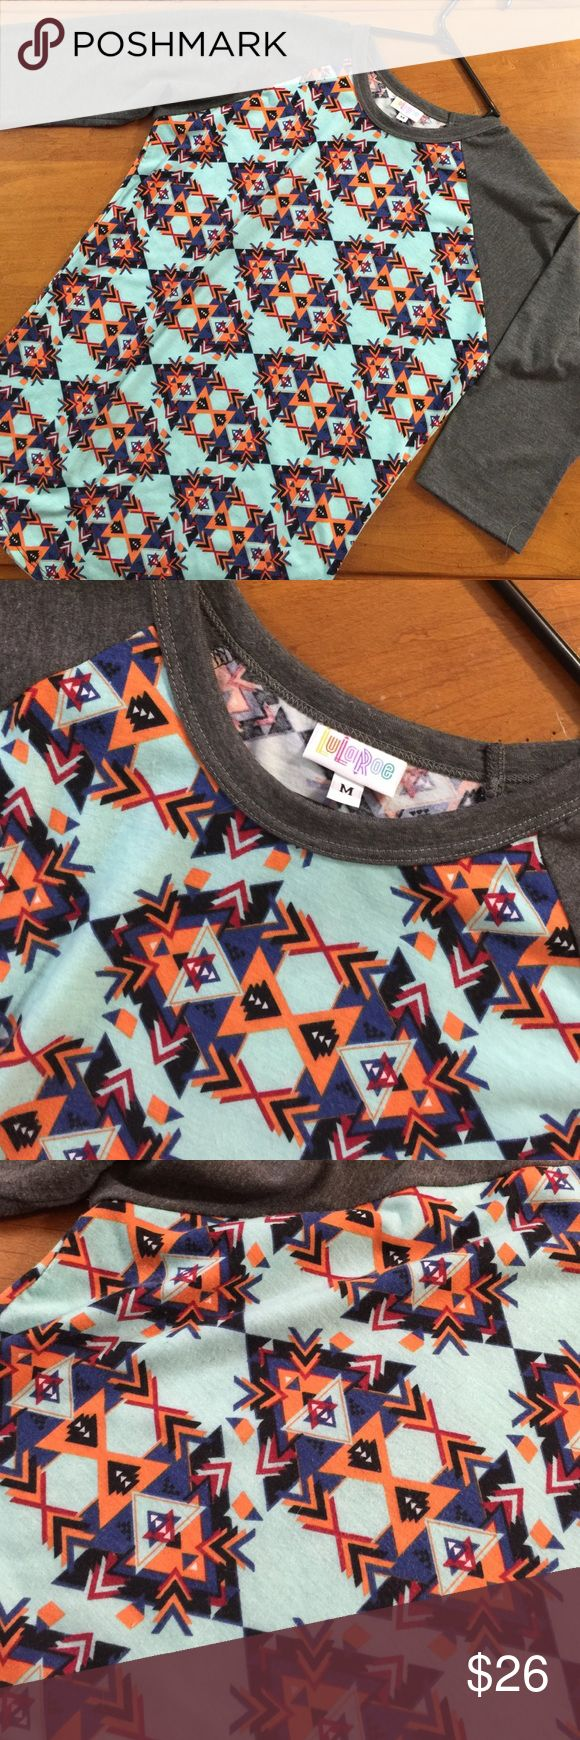 Lularue Randy (?) medium Aztec print Wore this once, in great condition.  3/4 length sleeve. I am not sure this is a Randy but that's what I think I see other people call this style. LuLaRoe Tops Tees - Long Sleeve